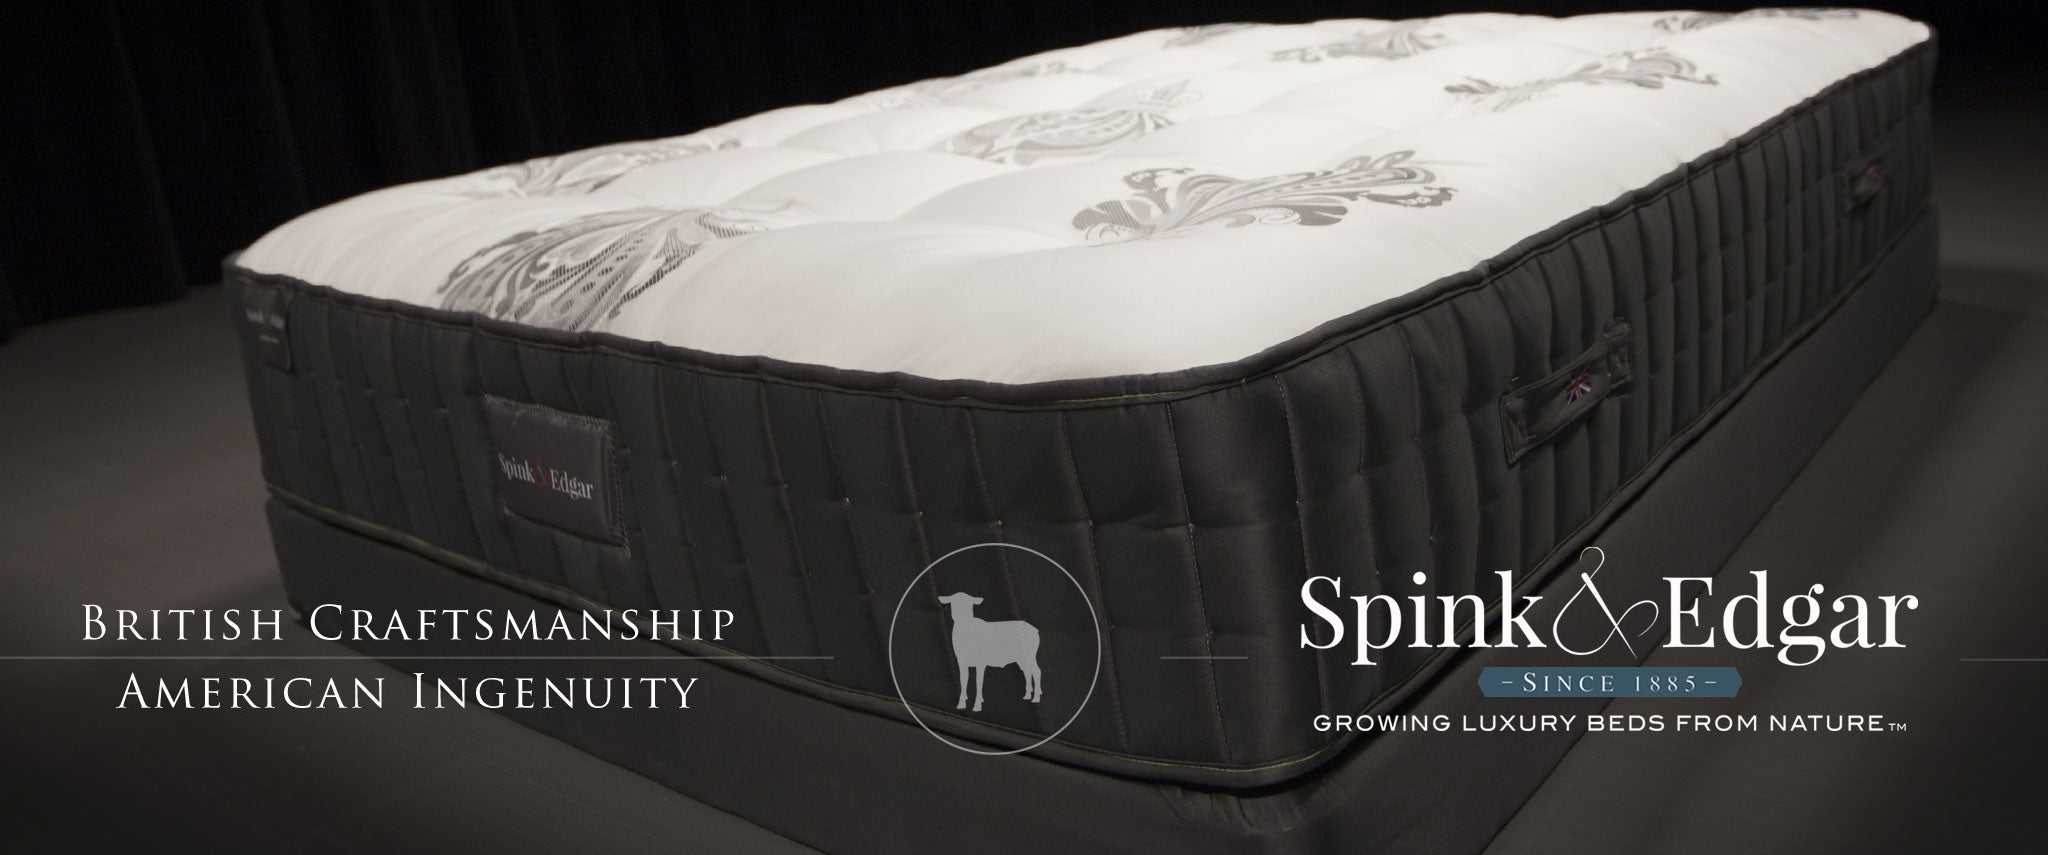 Natural, No Foam Mattresses by Spink & Edgar